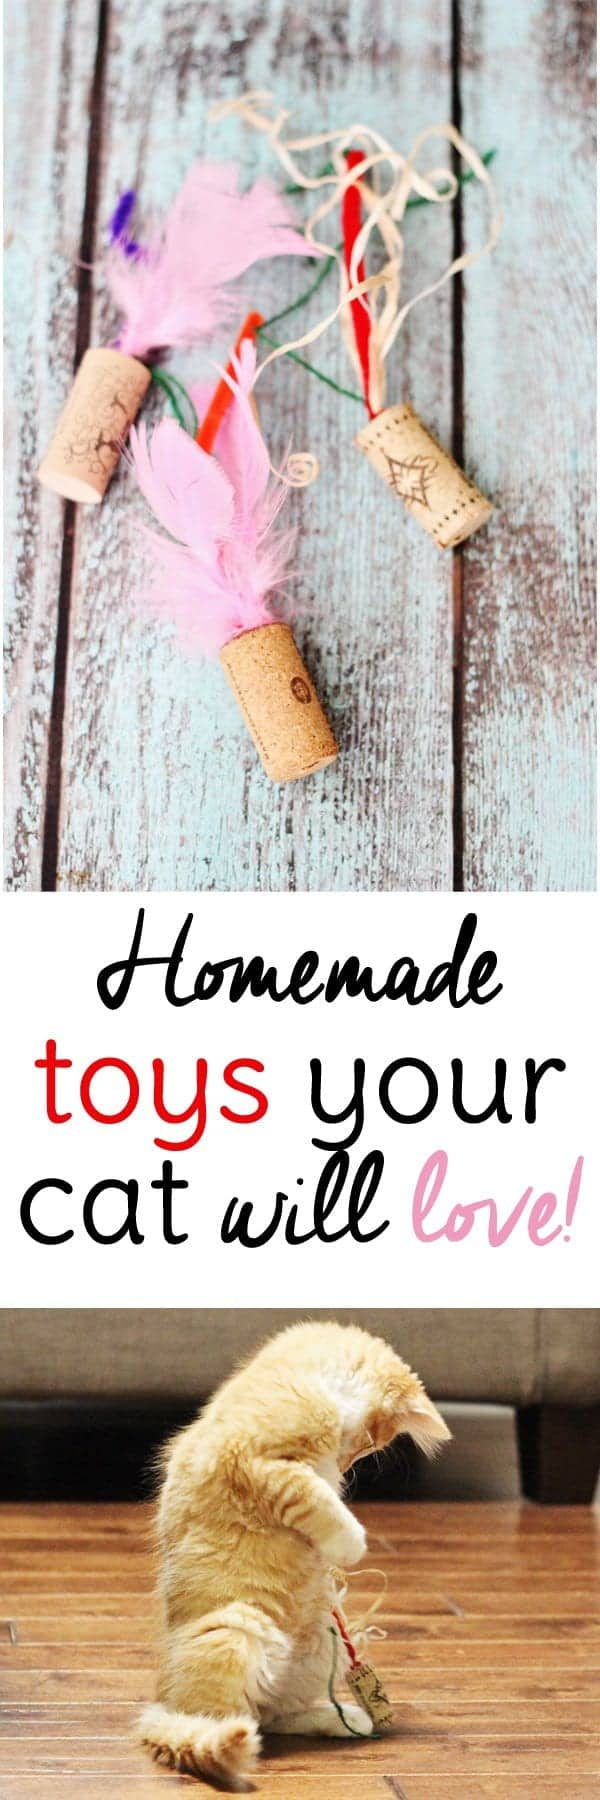 diy cat toys from wine corks